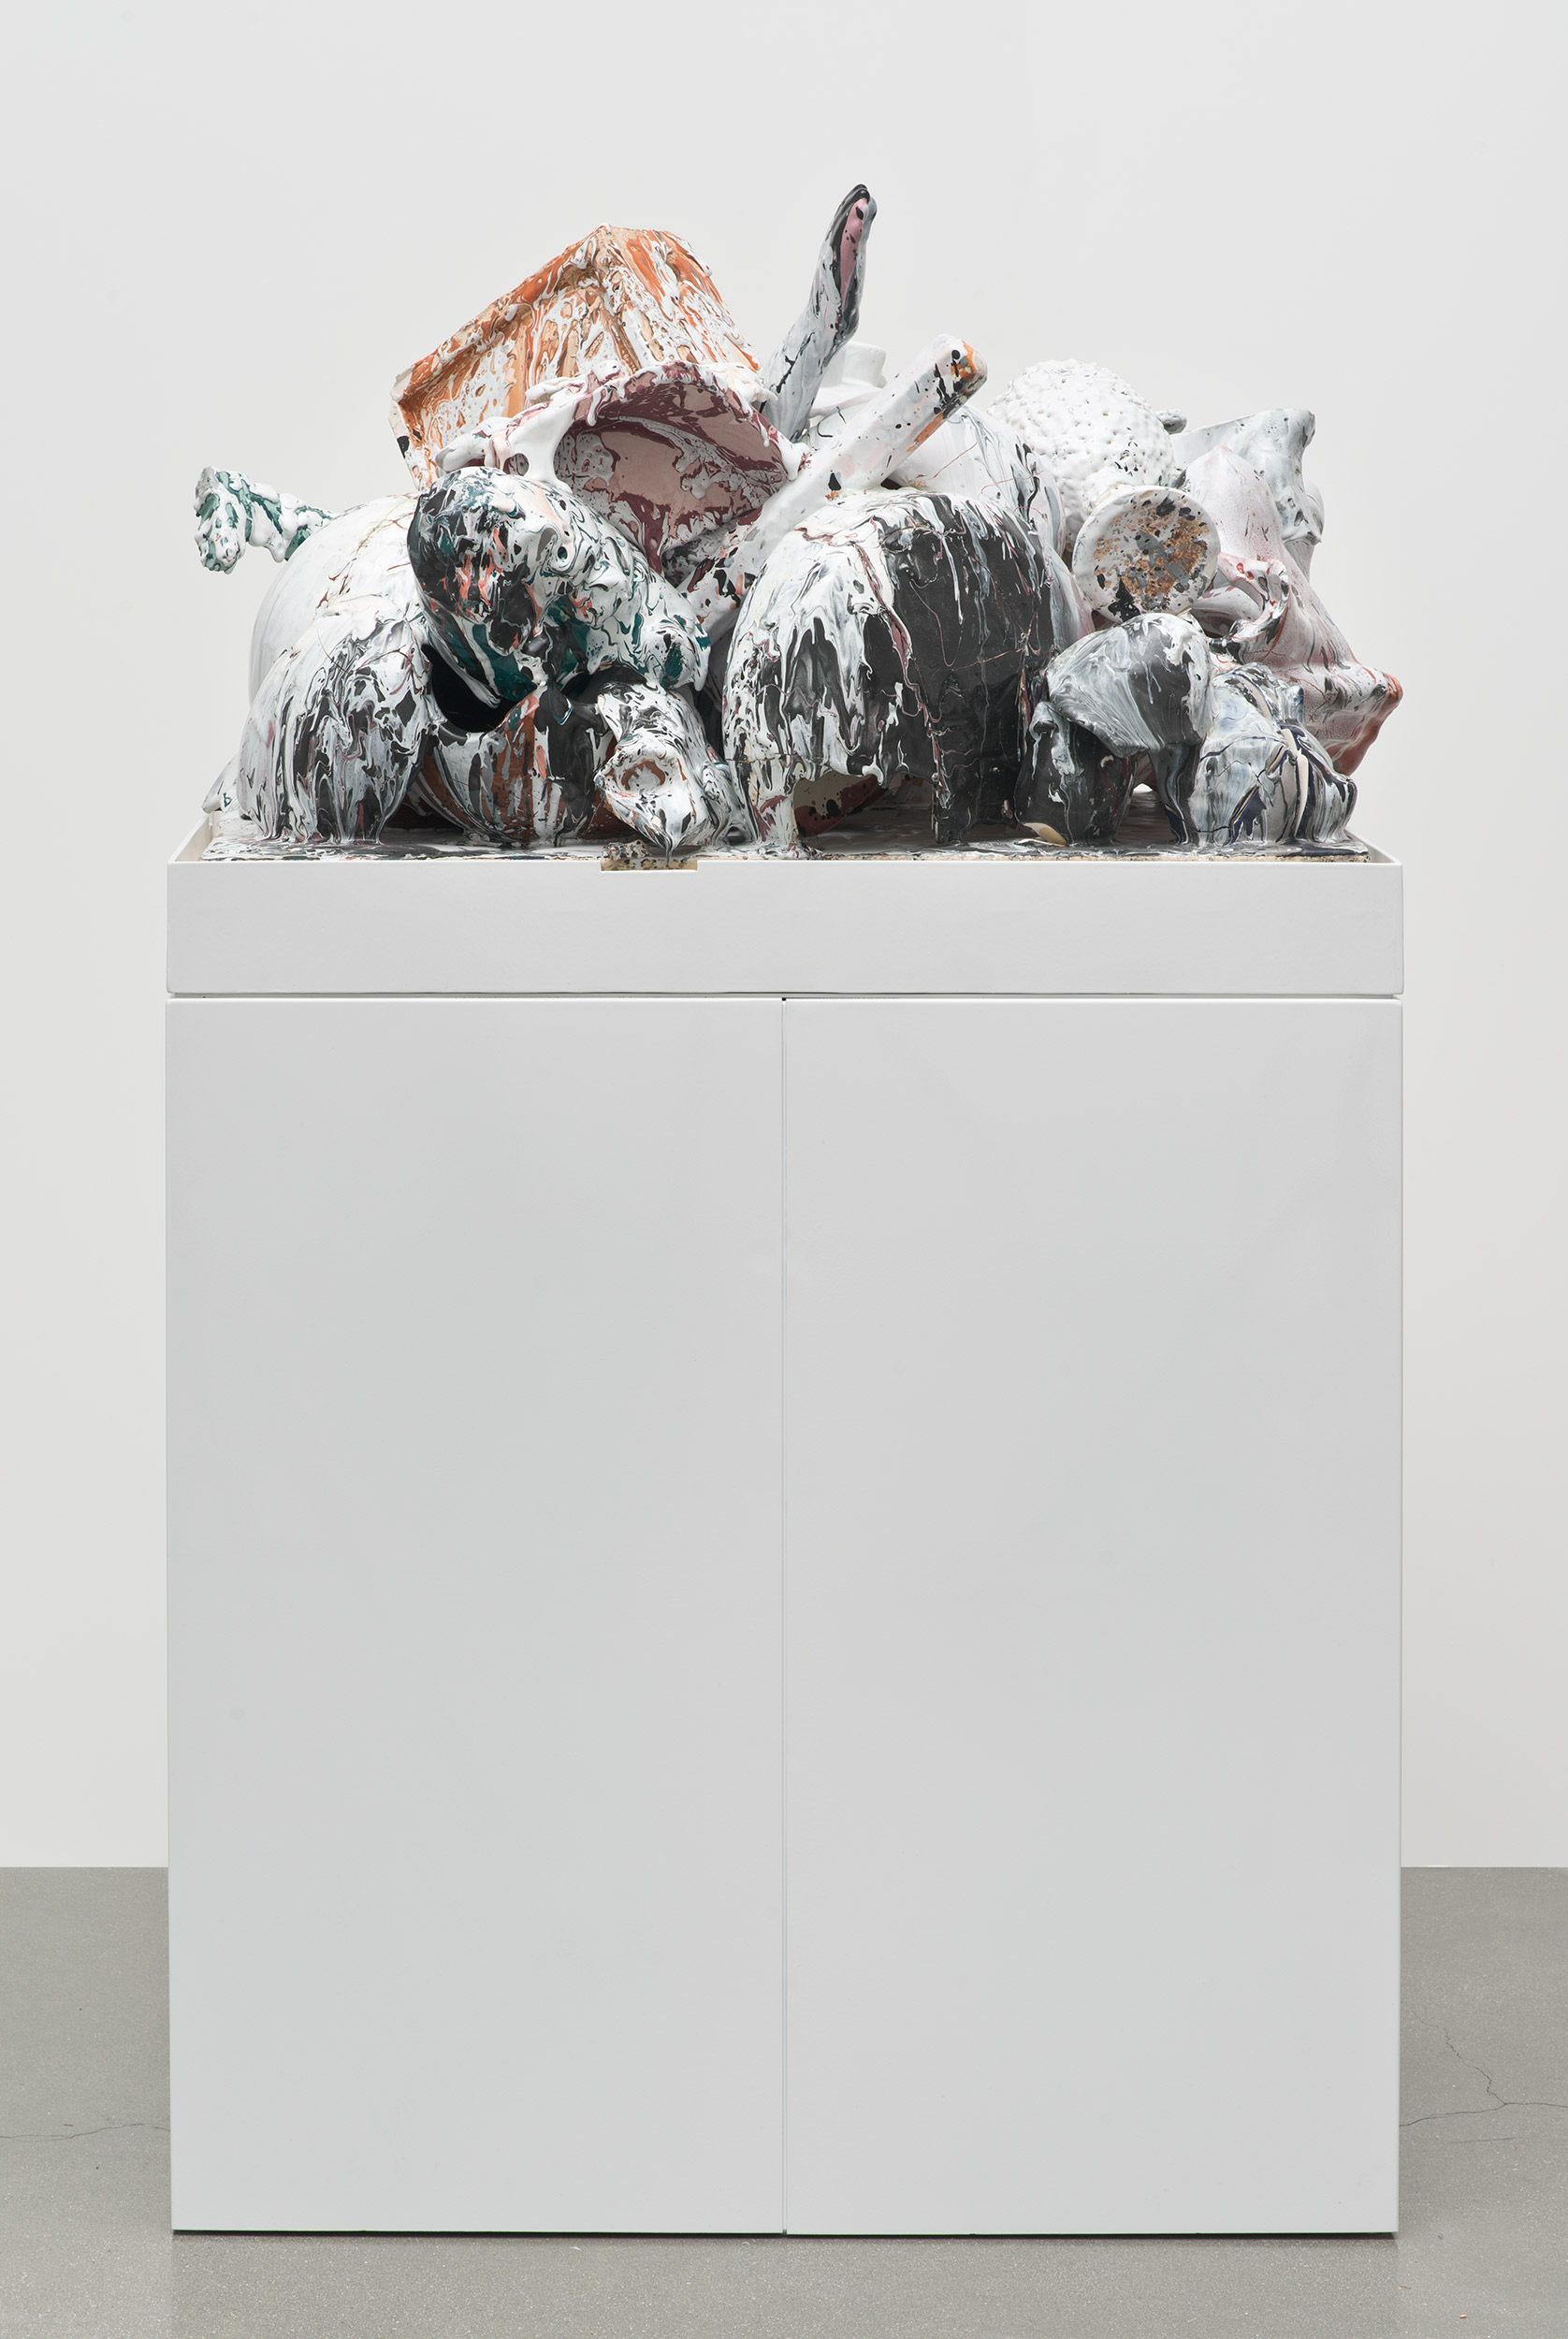 Aggregate XXVII (August 21st–23rd, Cerámica Suro, Guadalajara, Jalisco, Mexico)   2013  Ceramica Suro slip cast remnants, glaze, and firing plate  77 3/4 x 35 1/2 x 22 inches   Ceramics, 2013–    Selected Bodies of Work, 2014